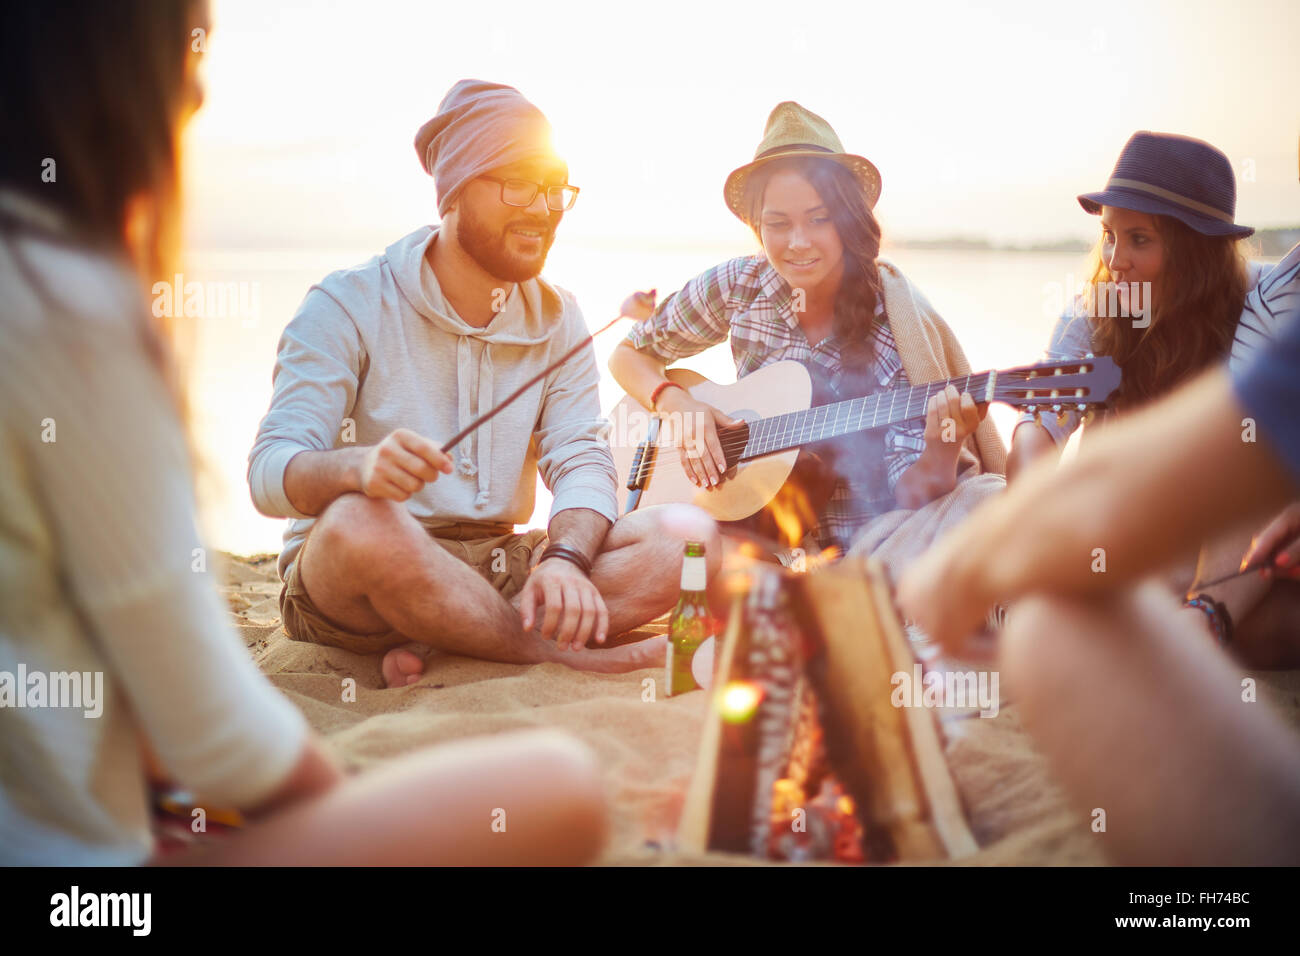 Group of campers spending evening by campfire - Stock Image